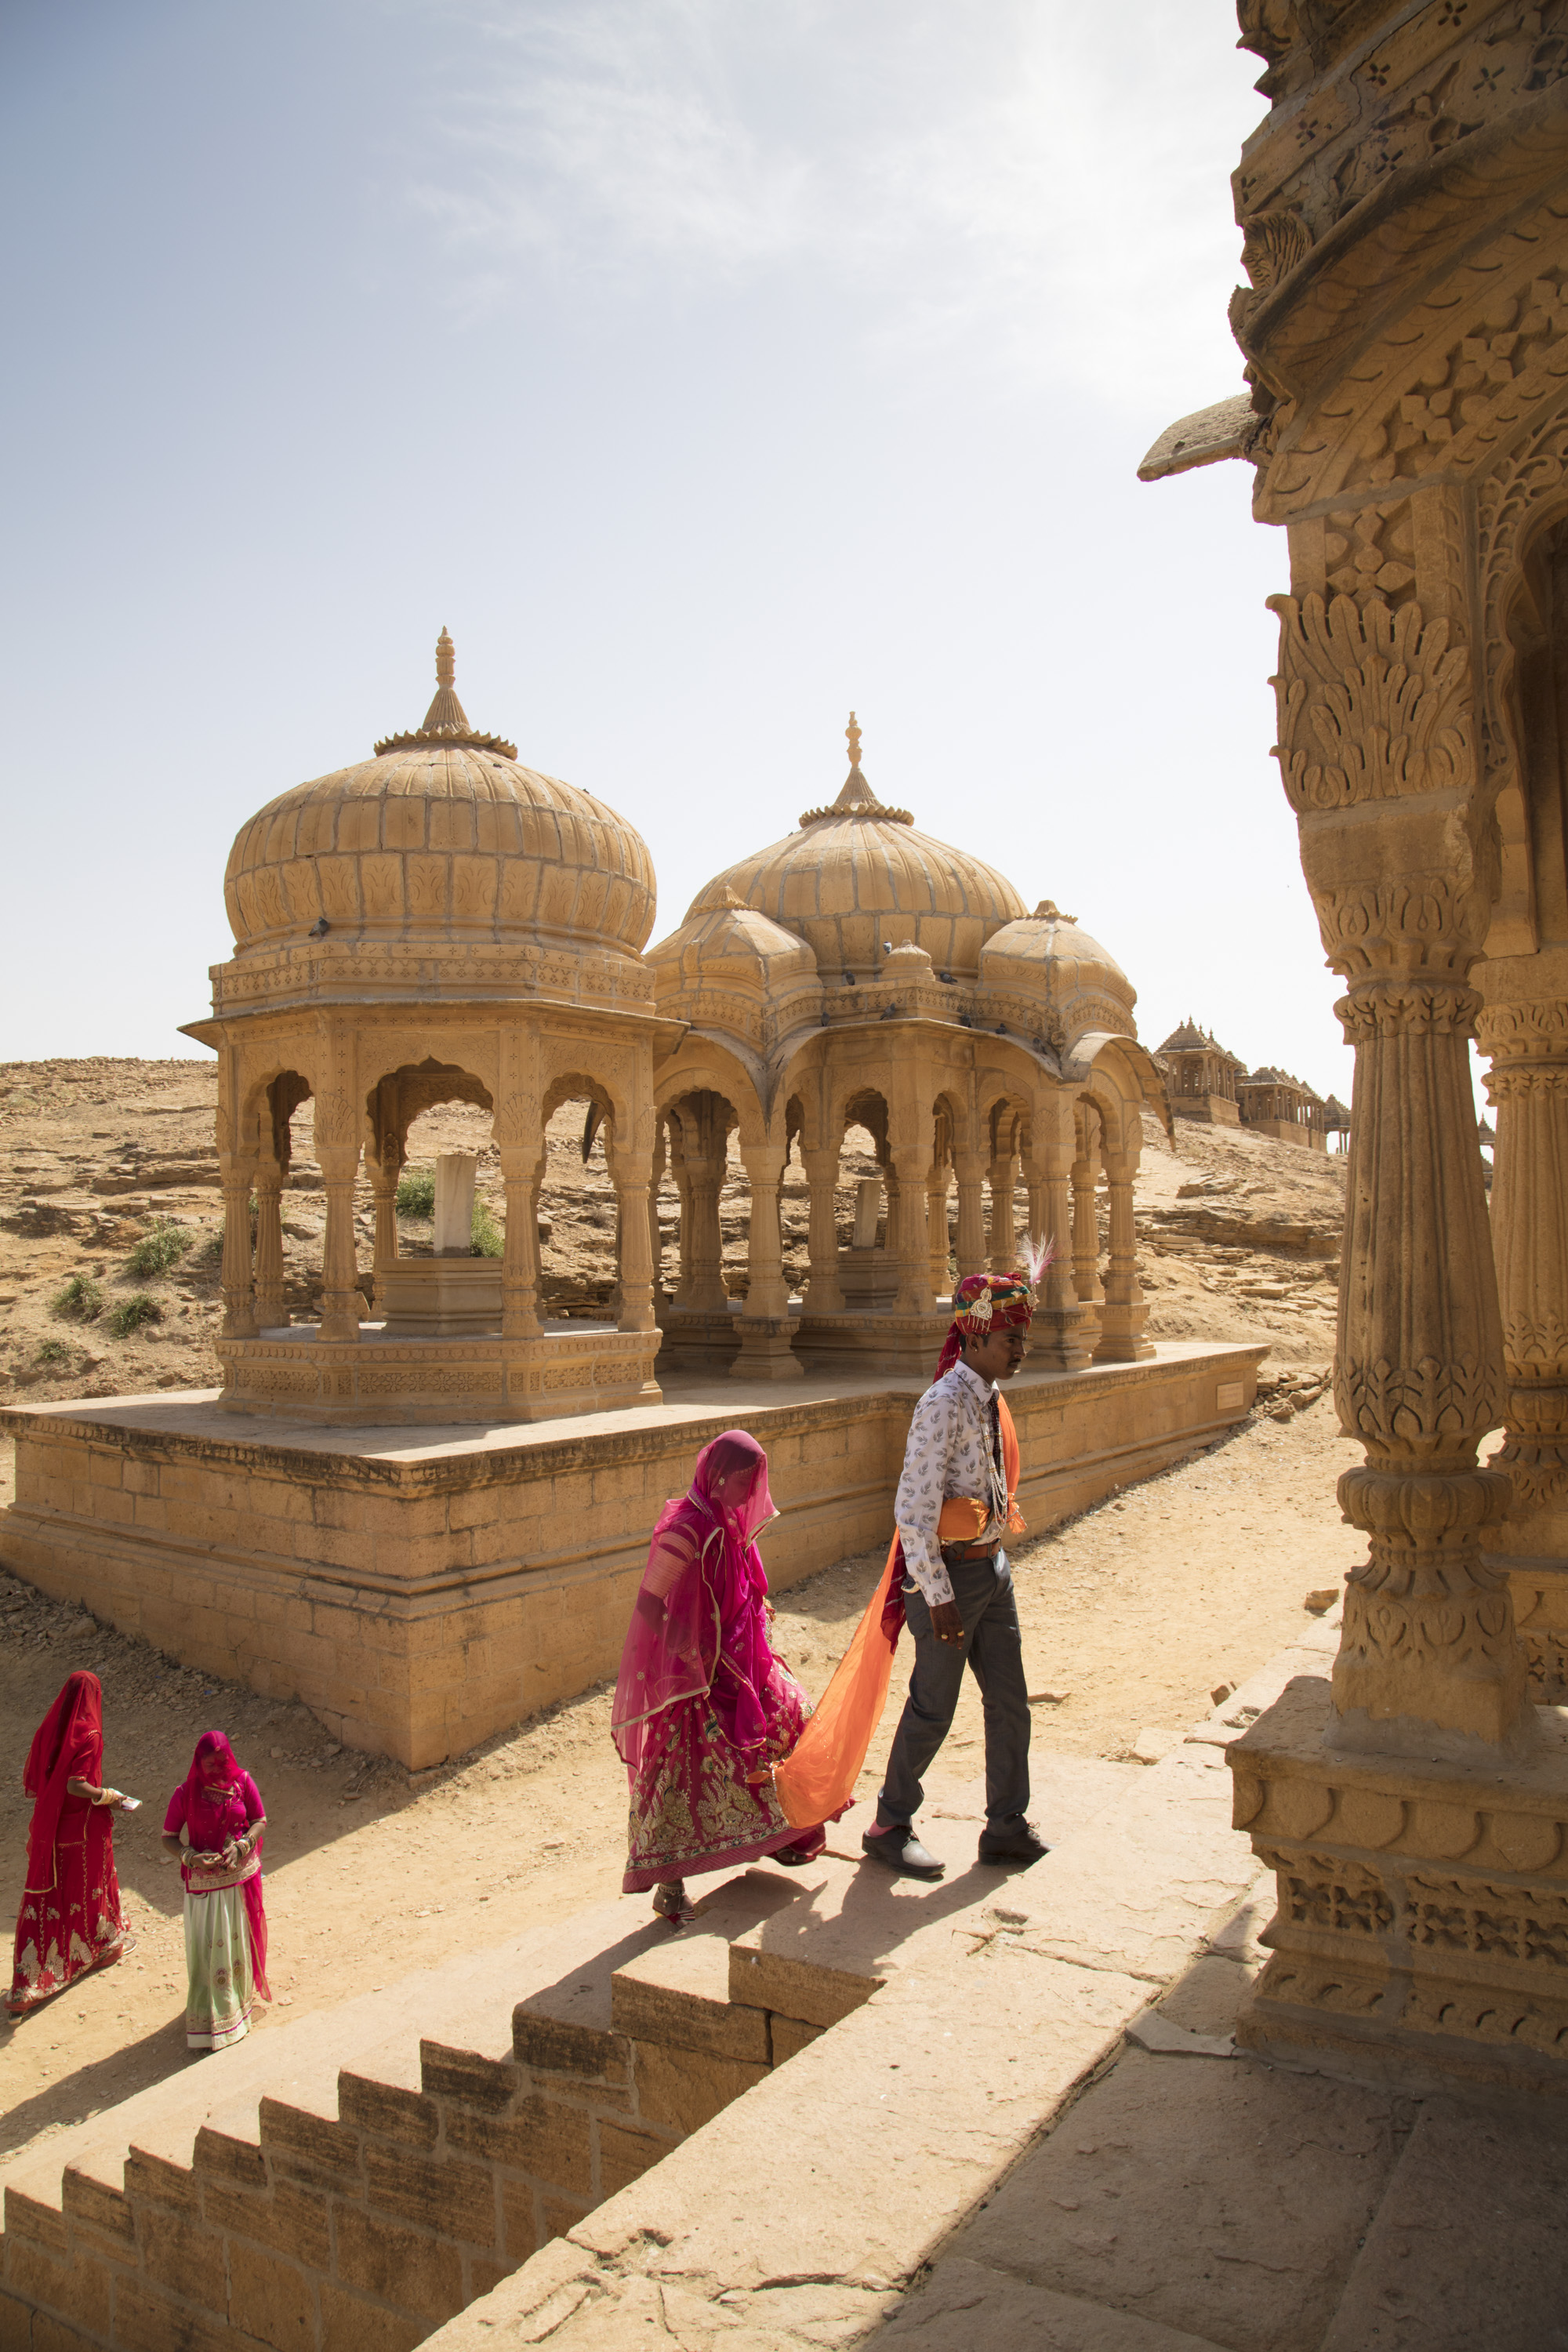 Mitaly and Dharmender who have just been married, photographed Barabagh, Jaisalmer, India.